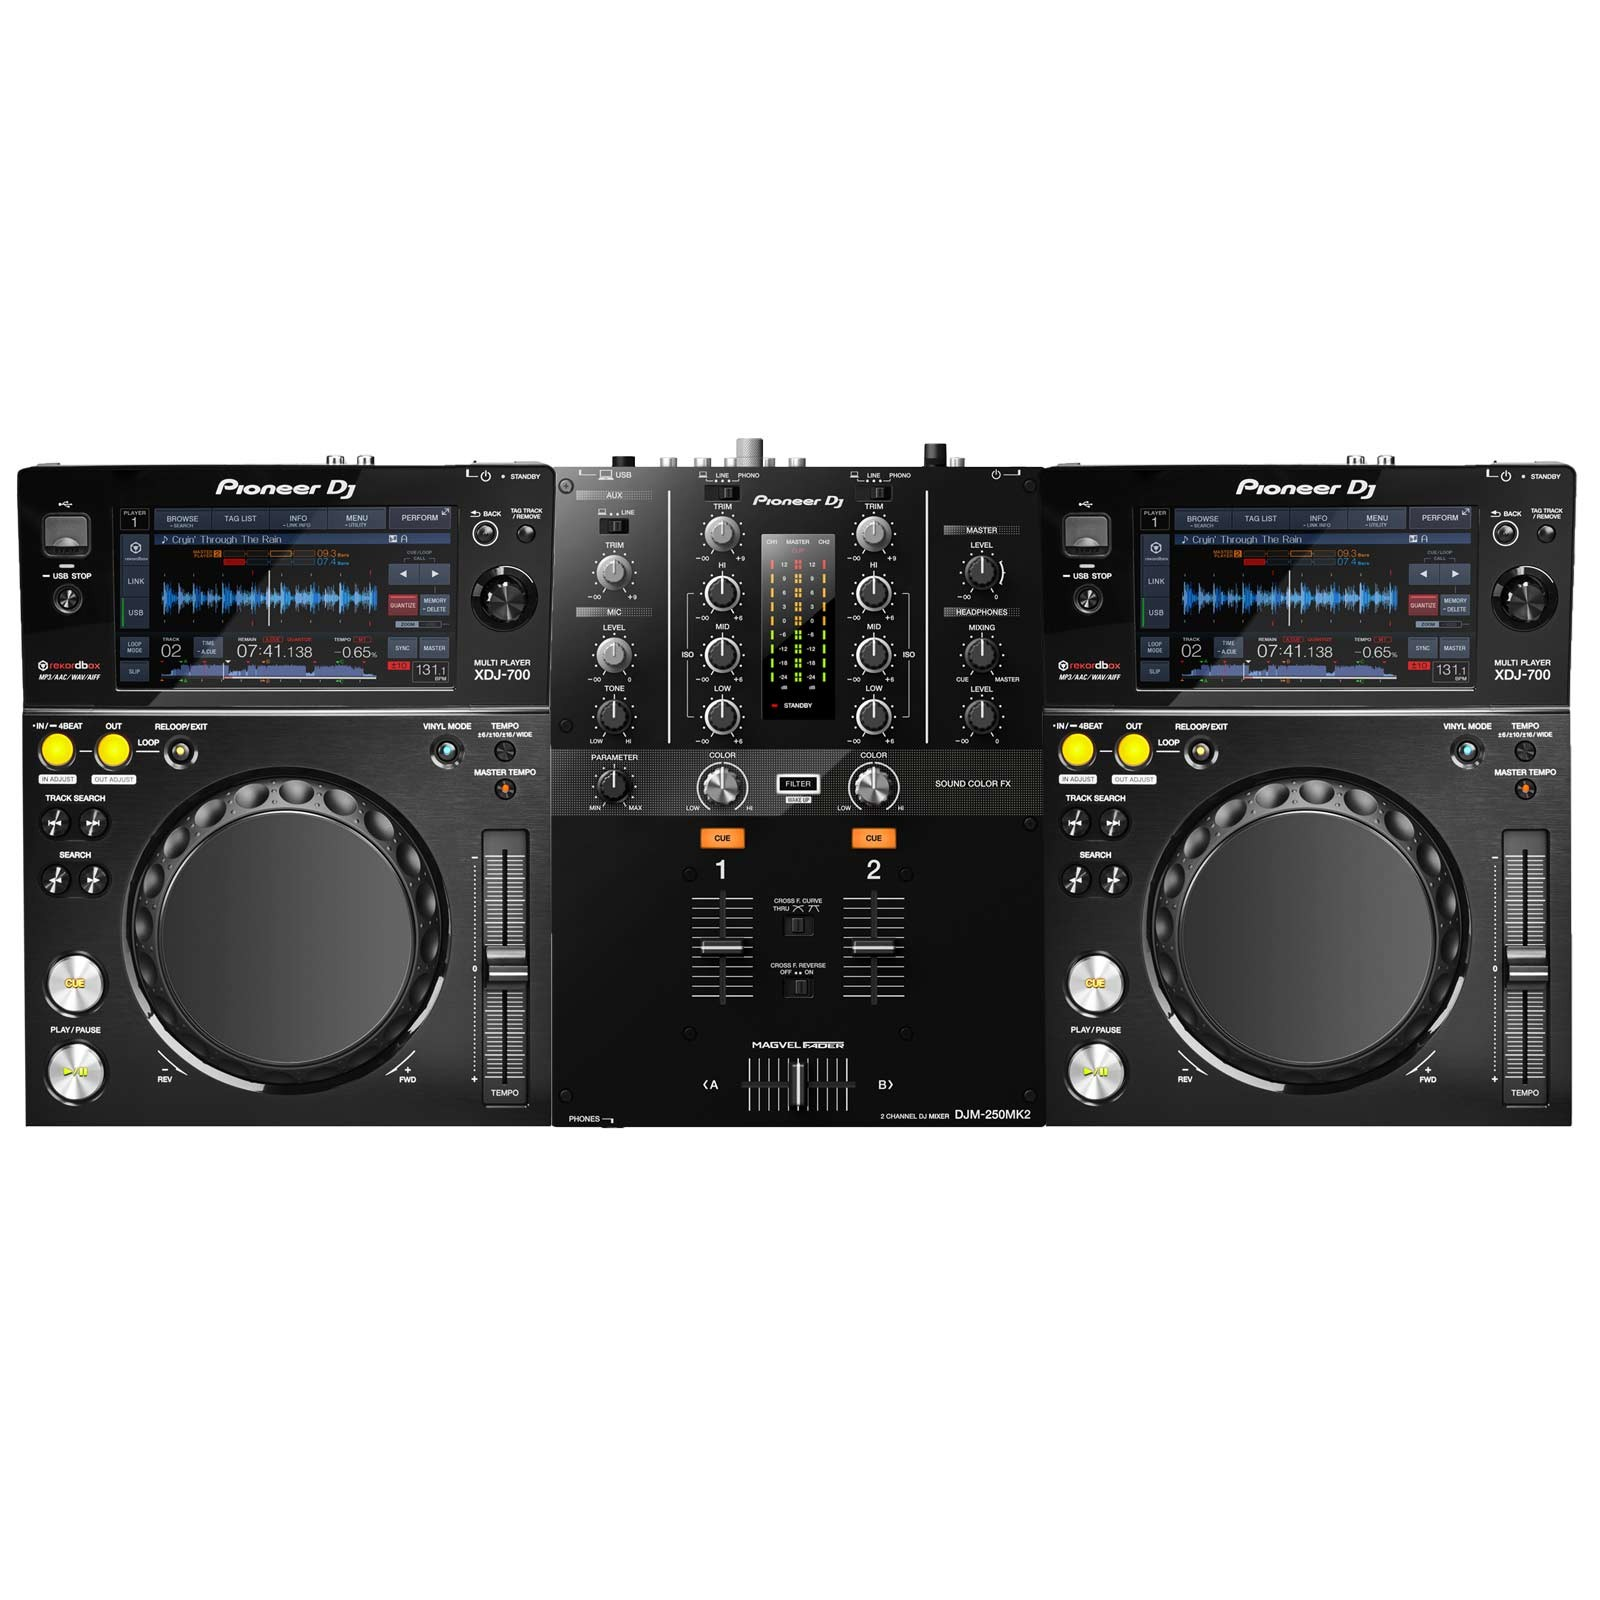 pioneer dj djm 250mk2 xdj 700 package. Black Bedroom Furniture Sets. Home Design Ideas